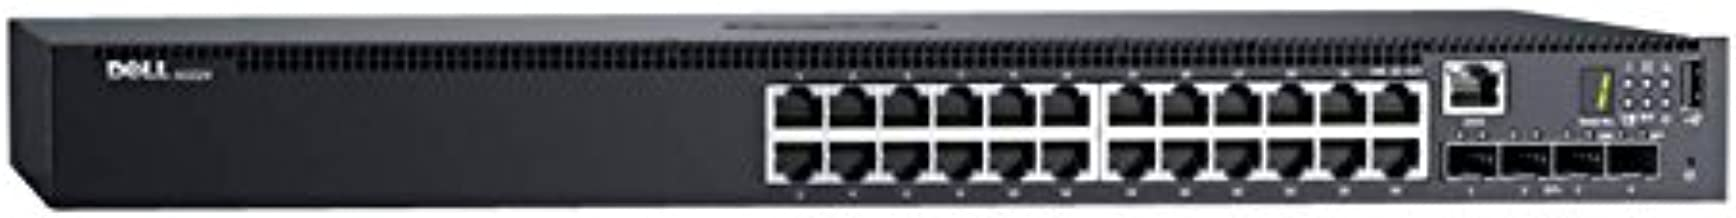 Dell Networking N1524 - Switch - 24 Ports - Managed - Rack-mountable, Black (463-7254)